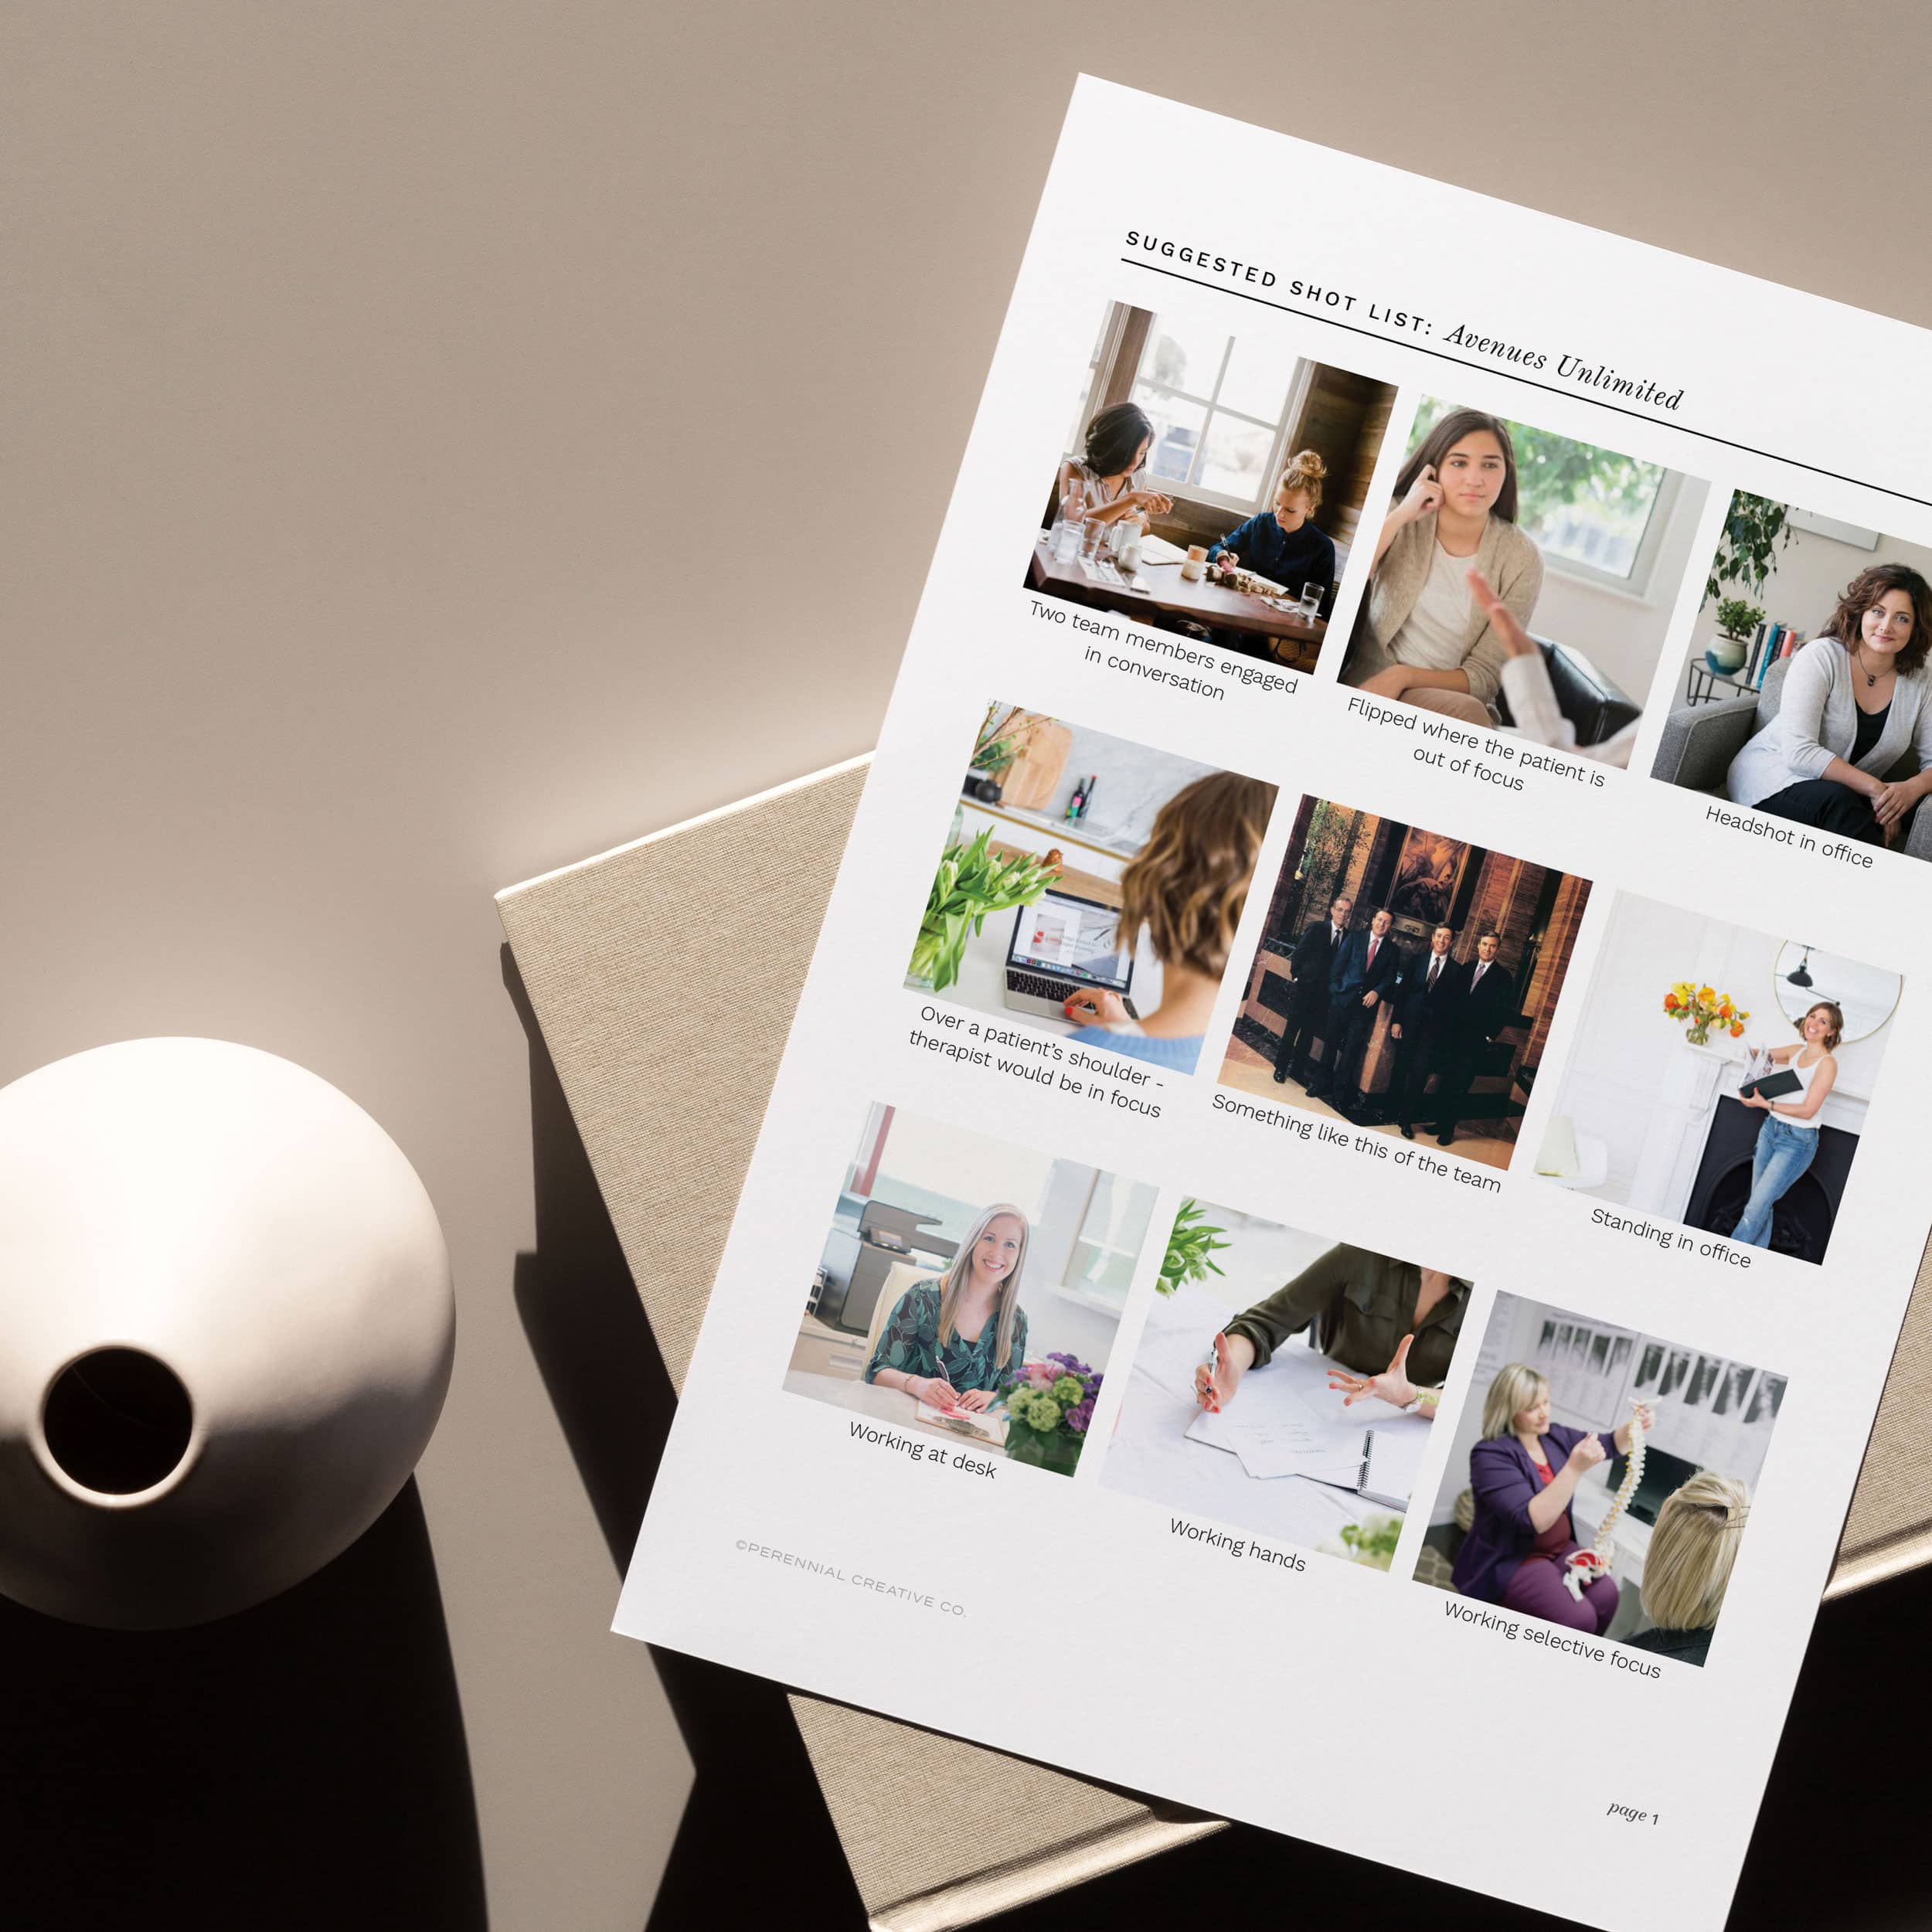 Avenues Unlimited shot list with 9 photos laying on top of a book next to a vase